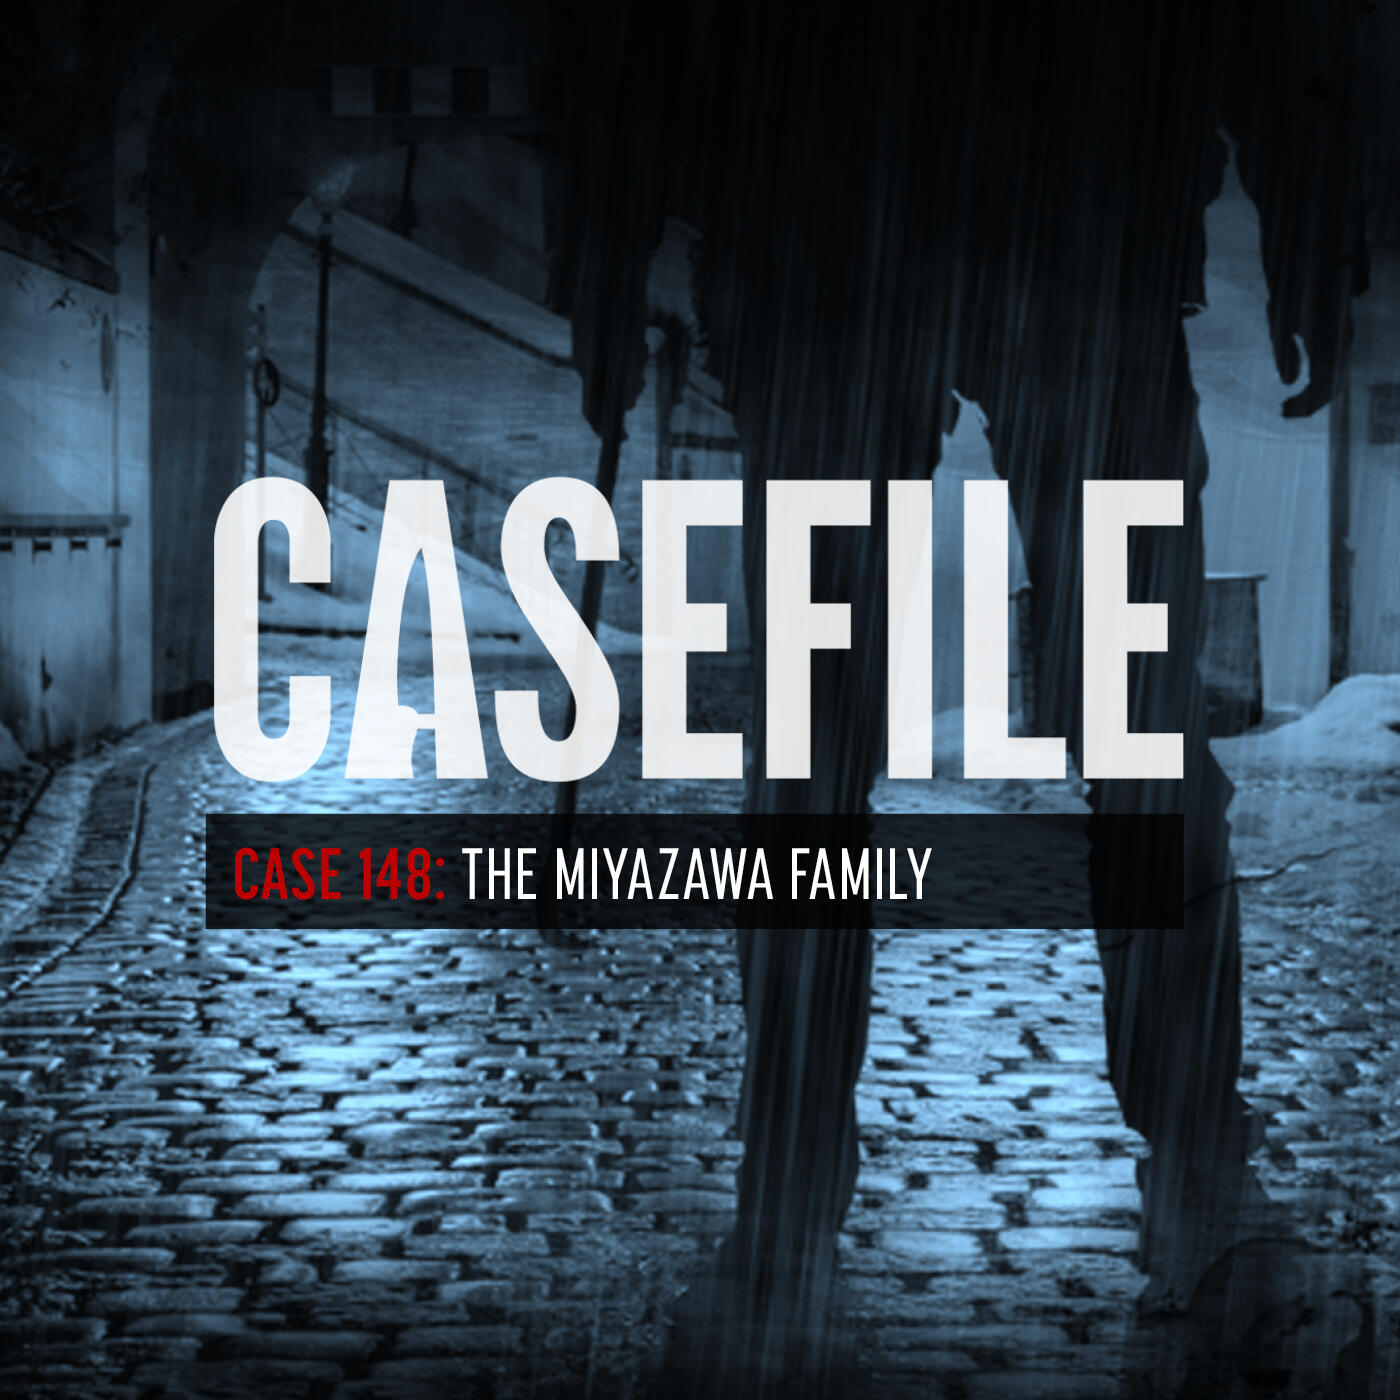 Case 148: The Miyazawa Family